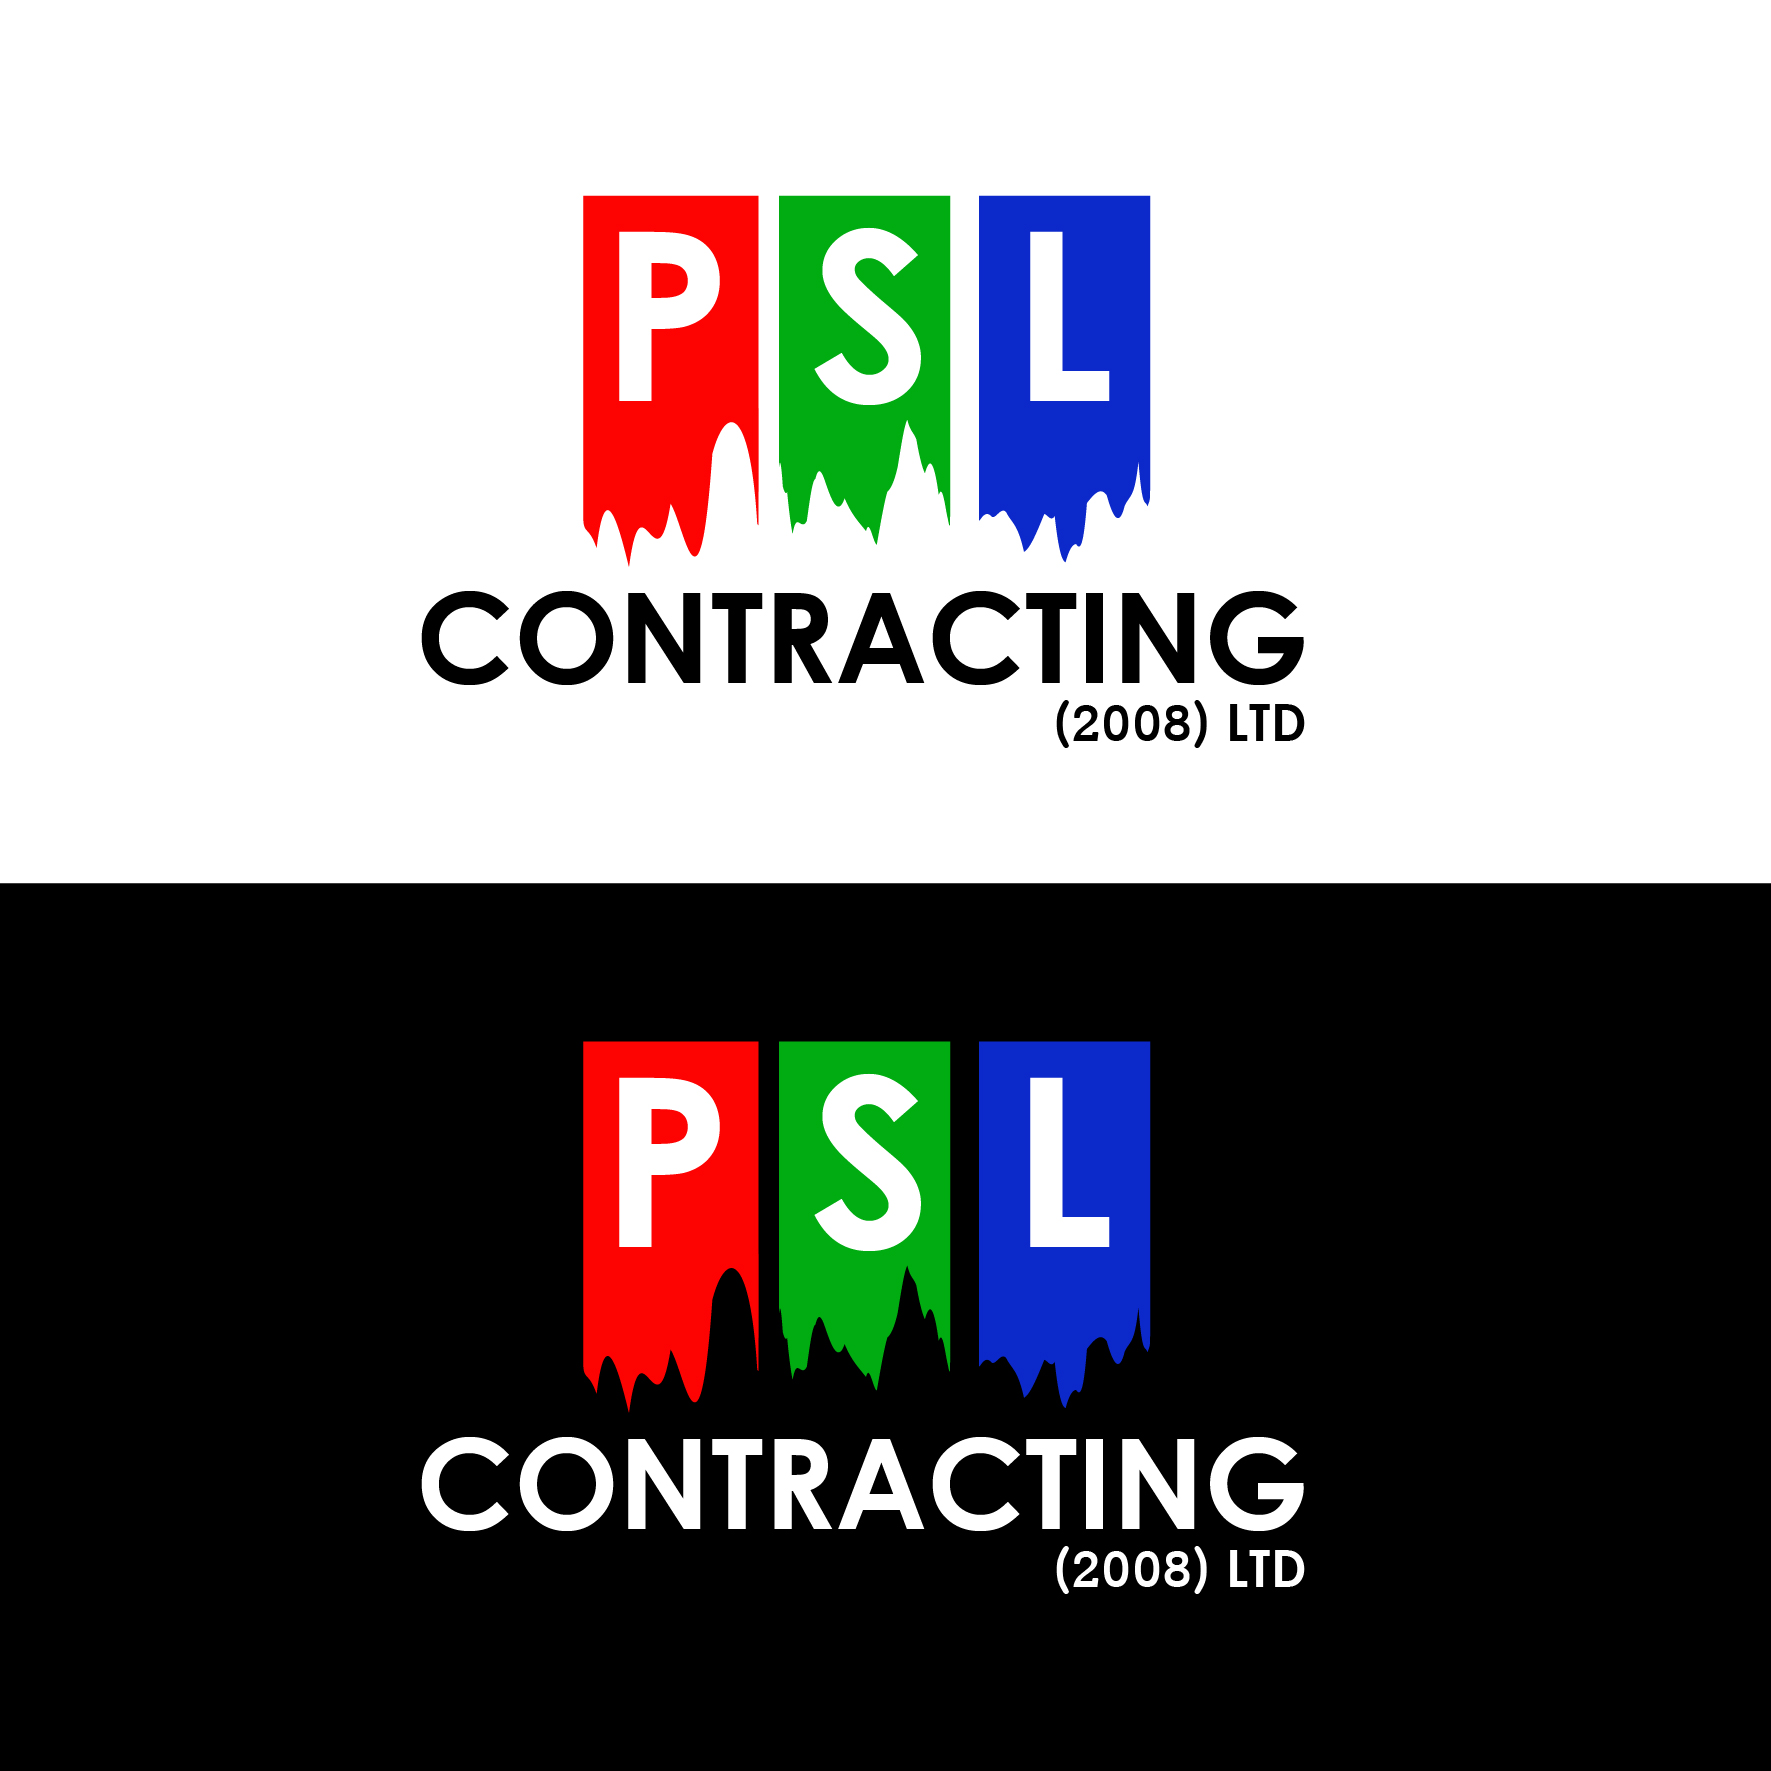 Logo Design by 3draw - Entry No. 2 in the Logo Design Contest PSL Contracting (2008) Ltd. Logo Design.